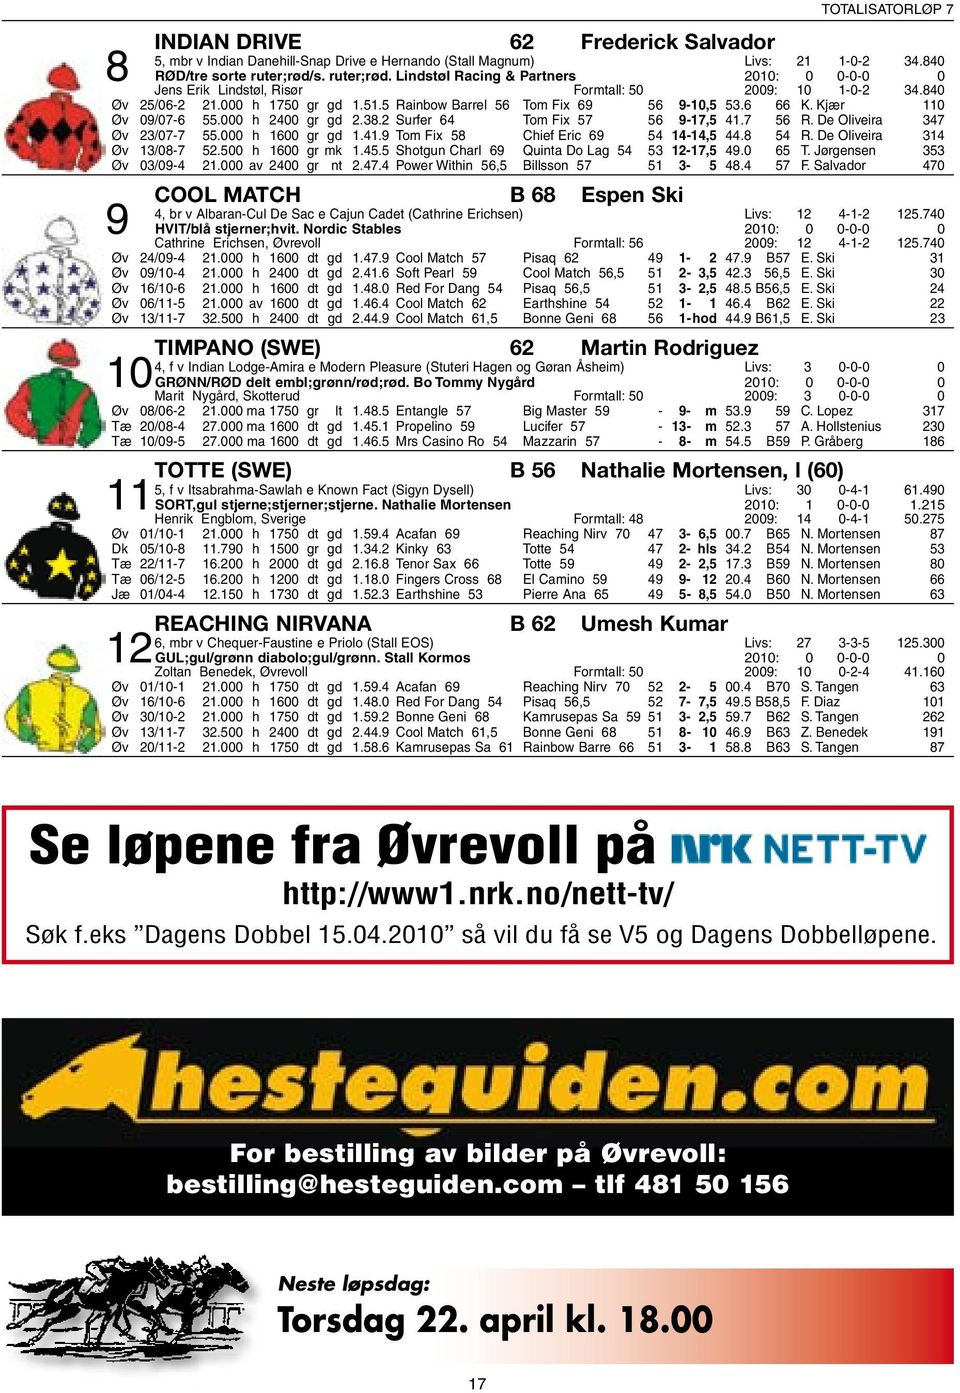 6 66 K. Kjær 110 Øv 09/07-6 55.000 h 2400 gr gd 2.38.2 Surfer 64 Tom Fix 57 56 9-17,5 41.7 56 R. De Oliveira 347 Øv 23/07-7 55.000 h 1600 gr gd 1.41.9 Tom Fix 58 Chief Eric 69 54 14-14,5 44.8 54 R.